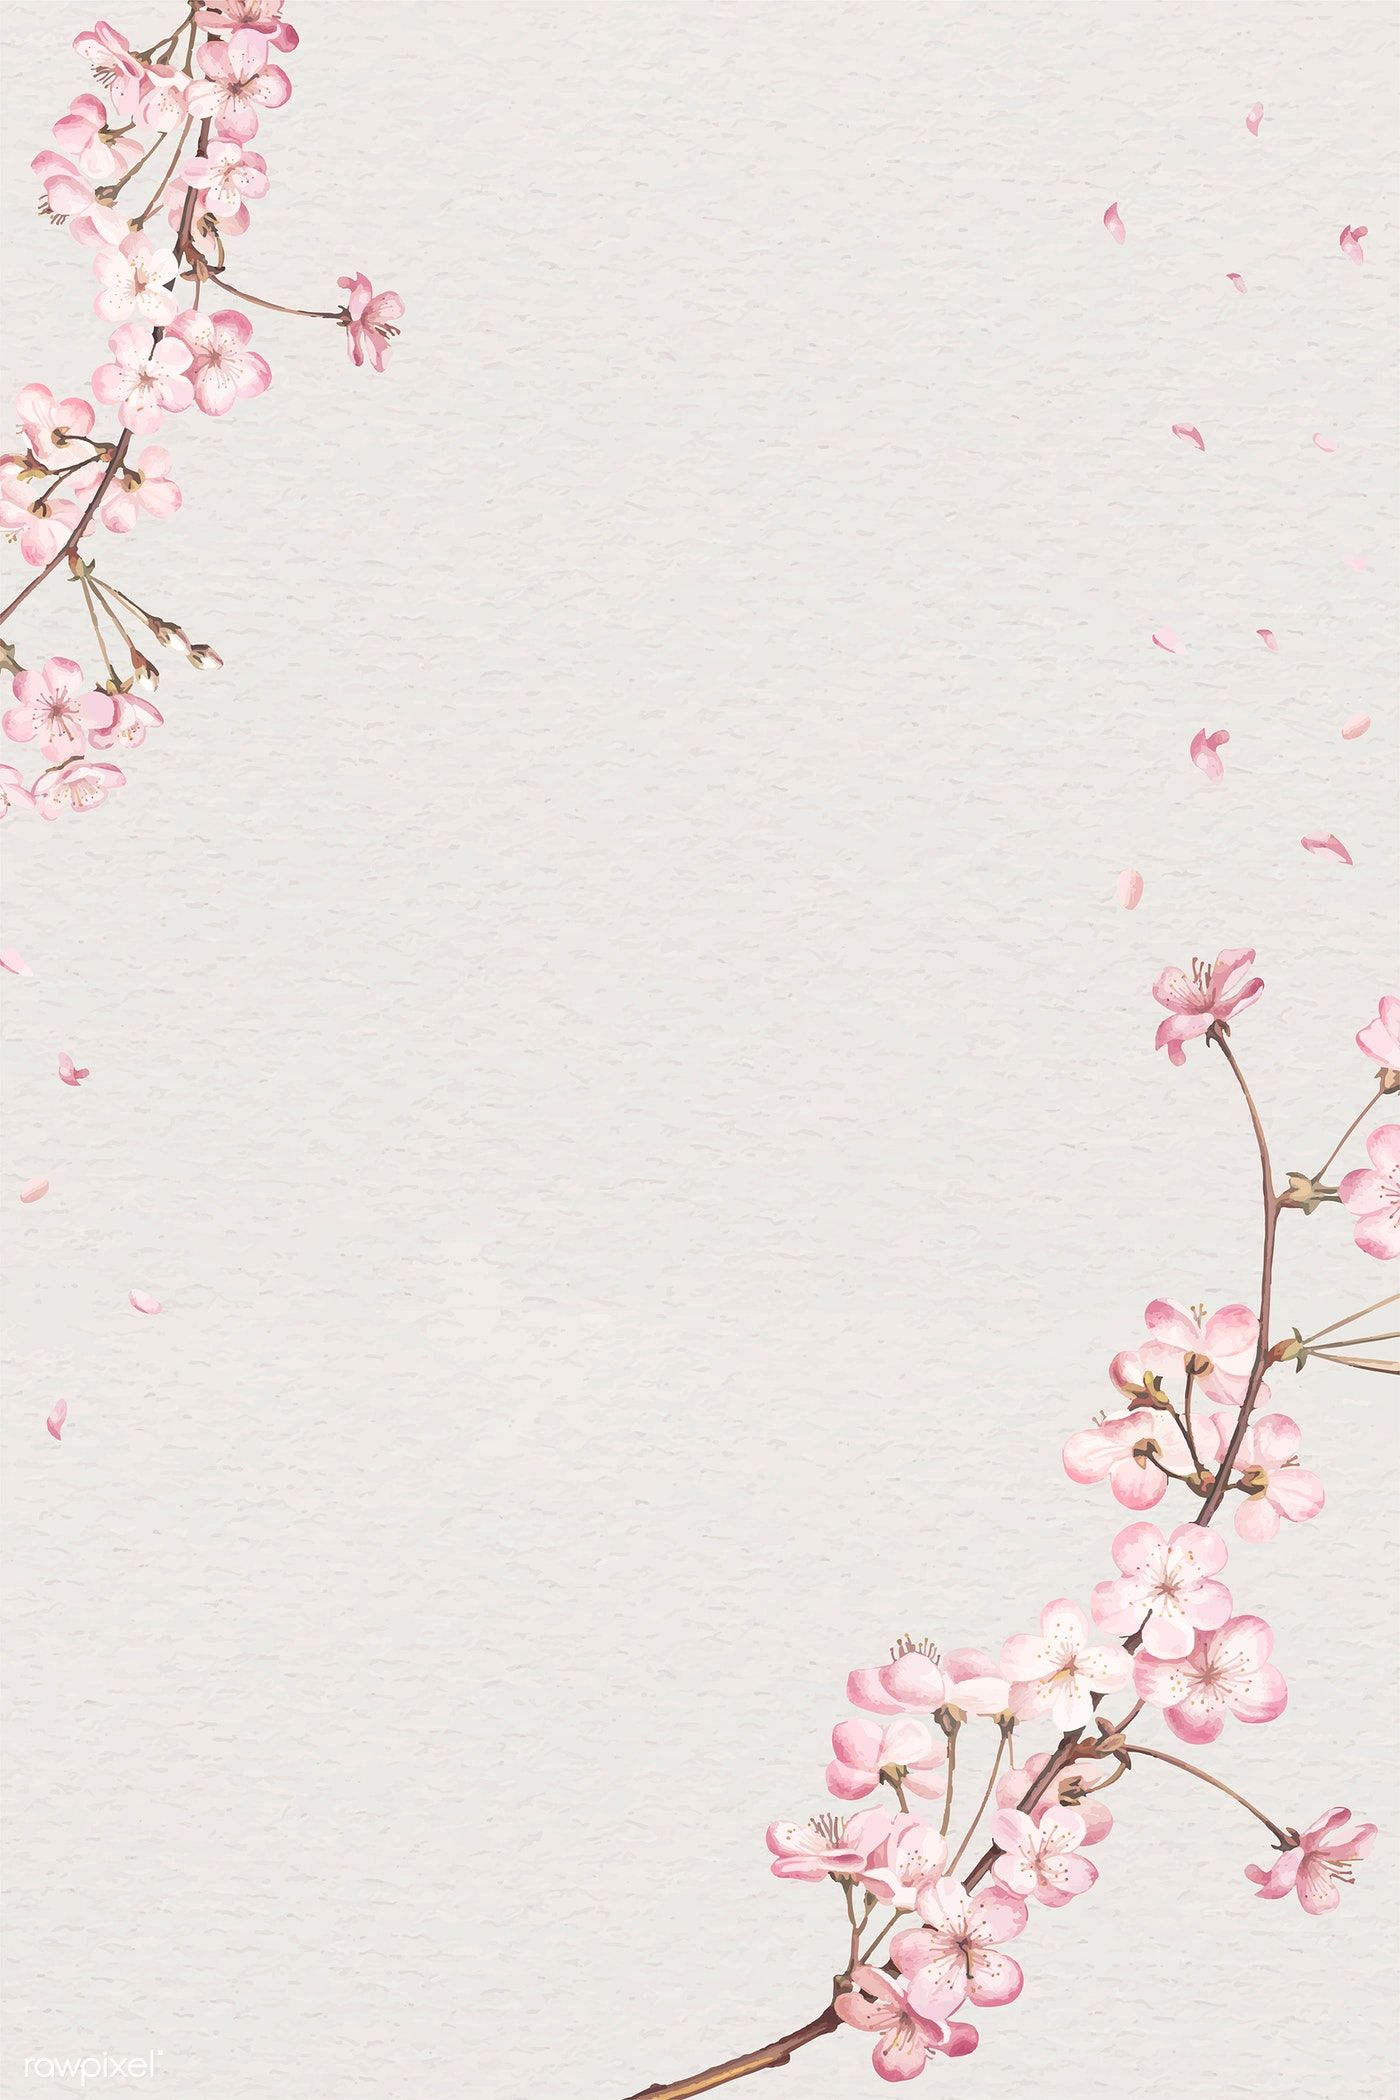 Download premium vector of Blank pink floral card illustration by Donlaya about cherry blossom, blossom, wedding invitation, invitation, and frame 894151